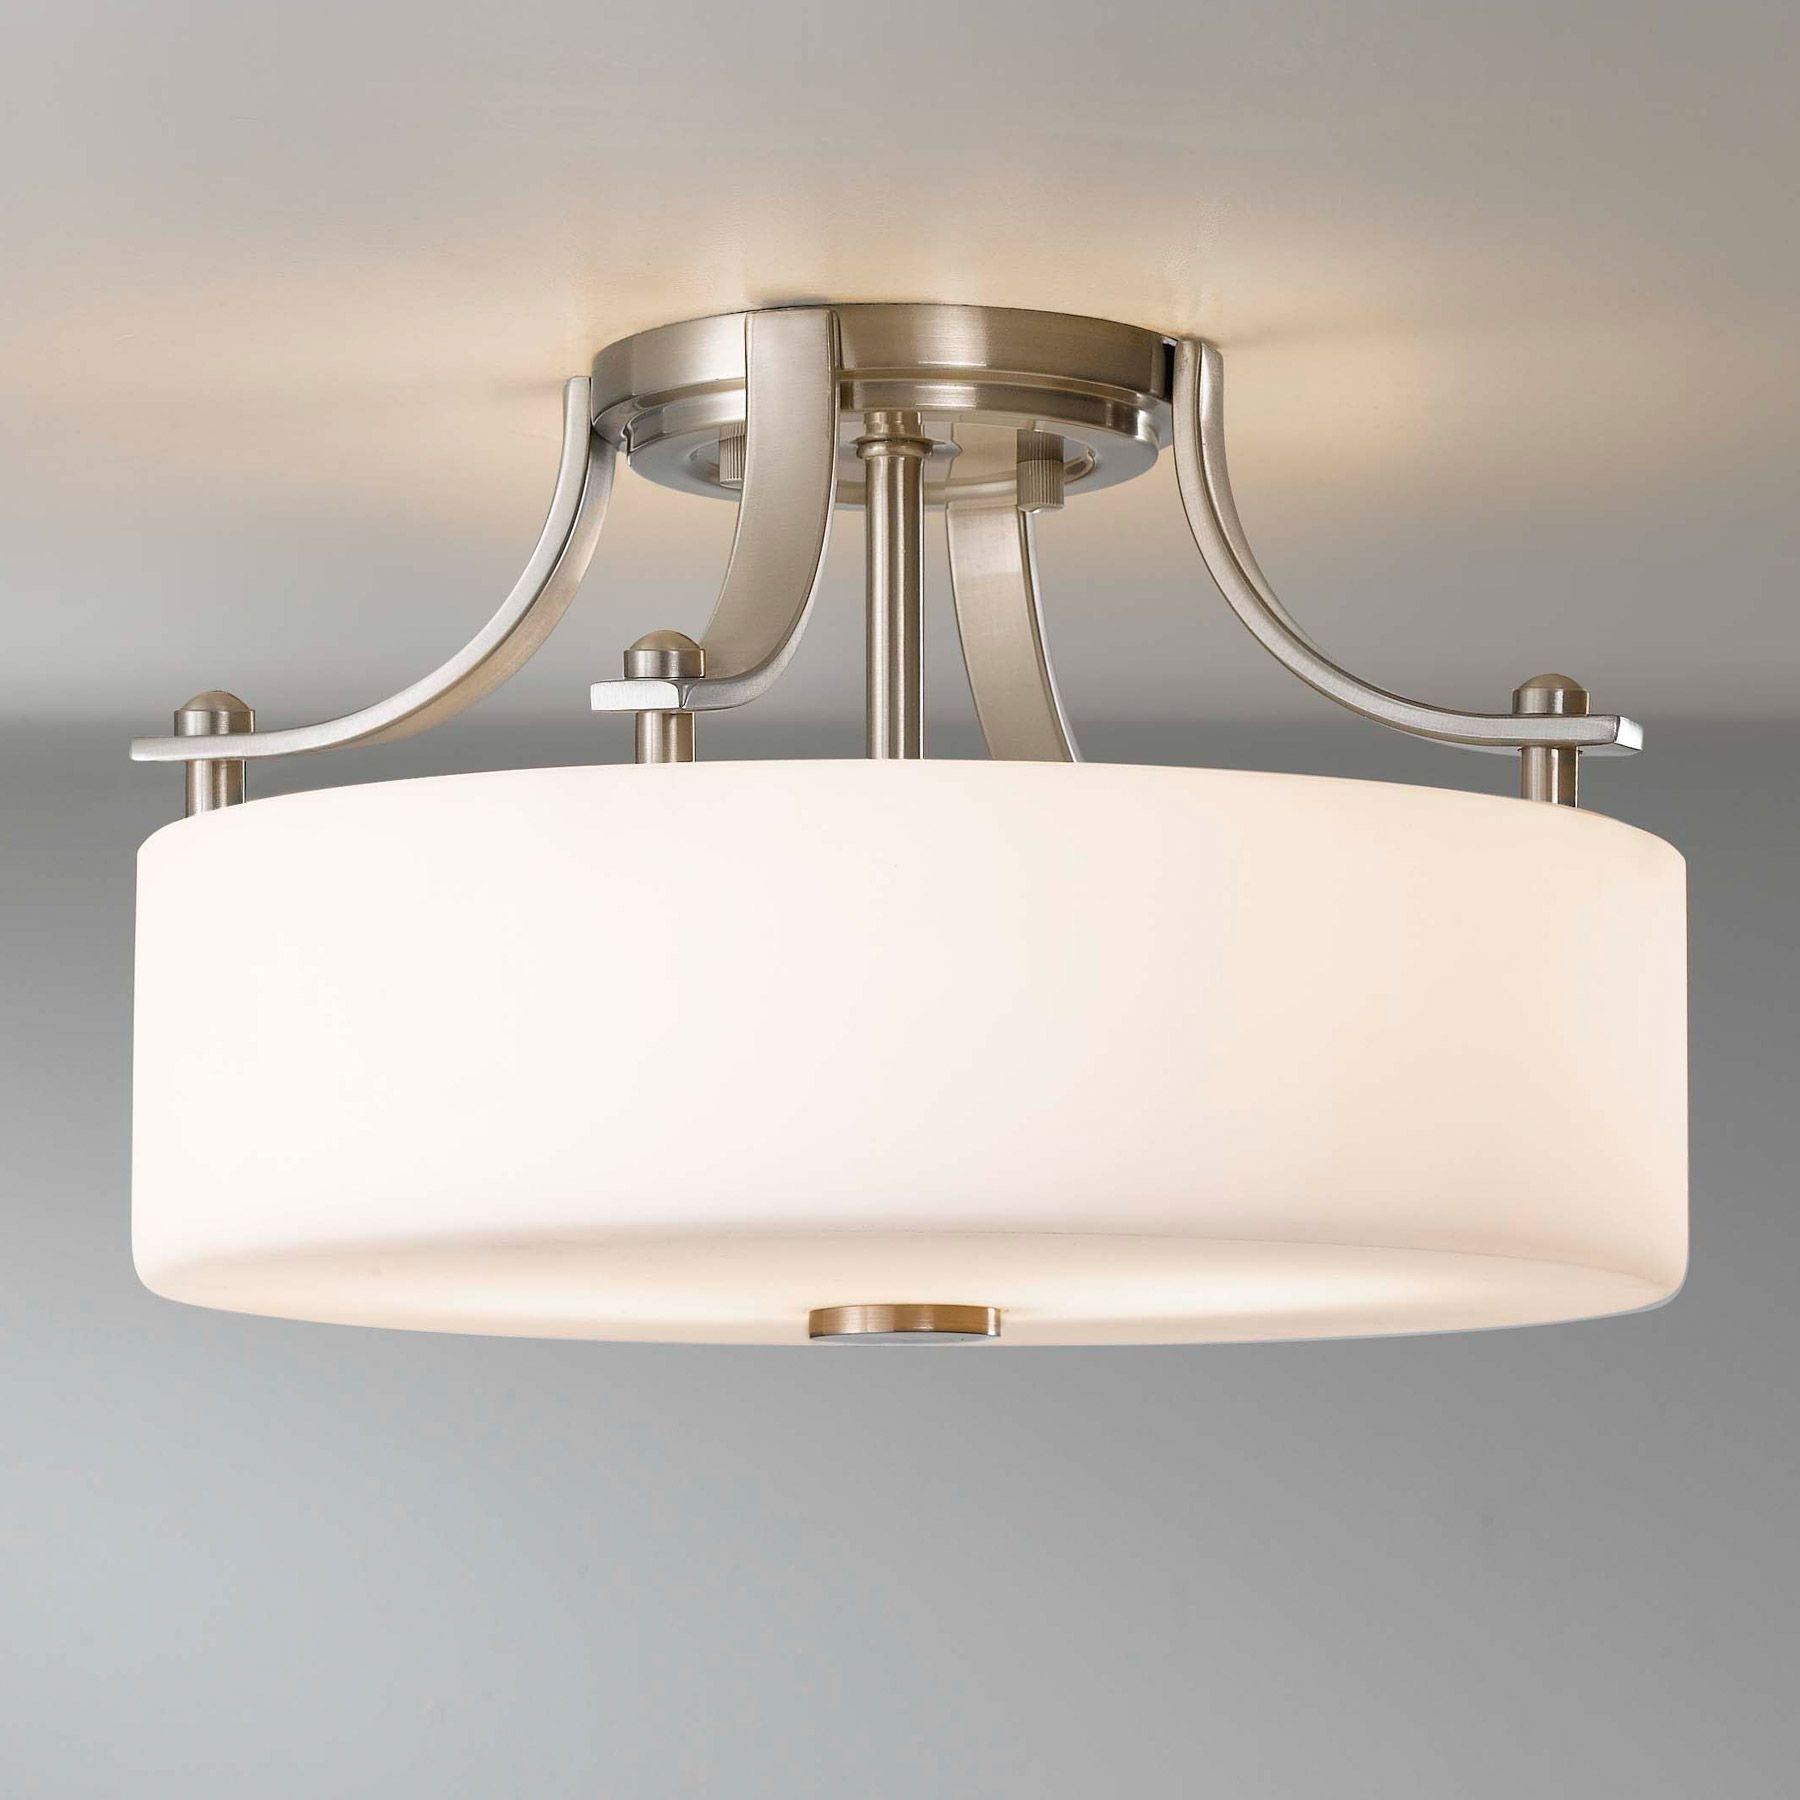 Flush Mount Kitchen Lighting Fixtures White Flushmount Light Fixture Flush Mount Ceiling Light